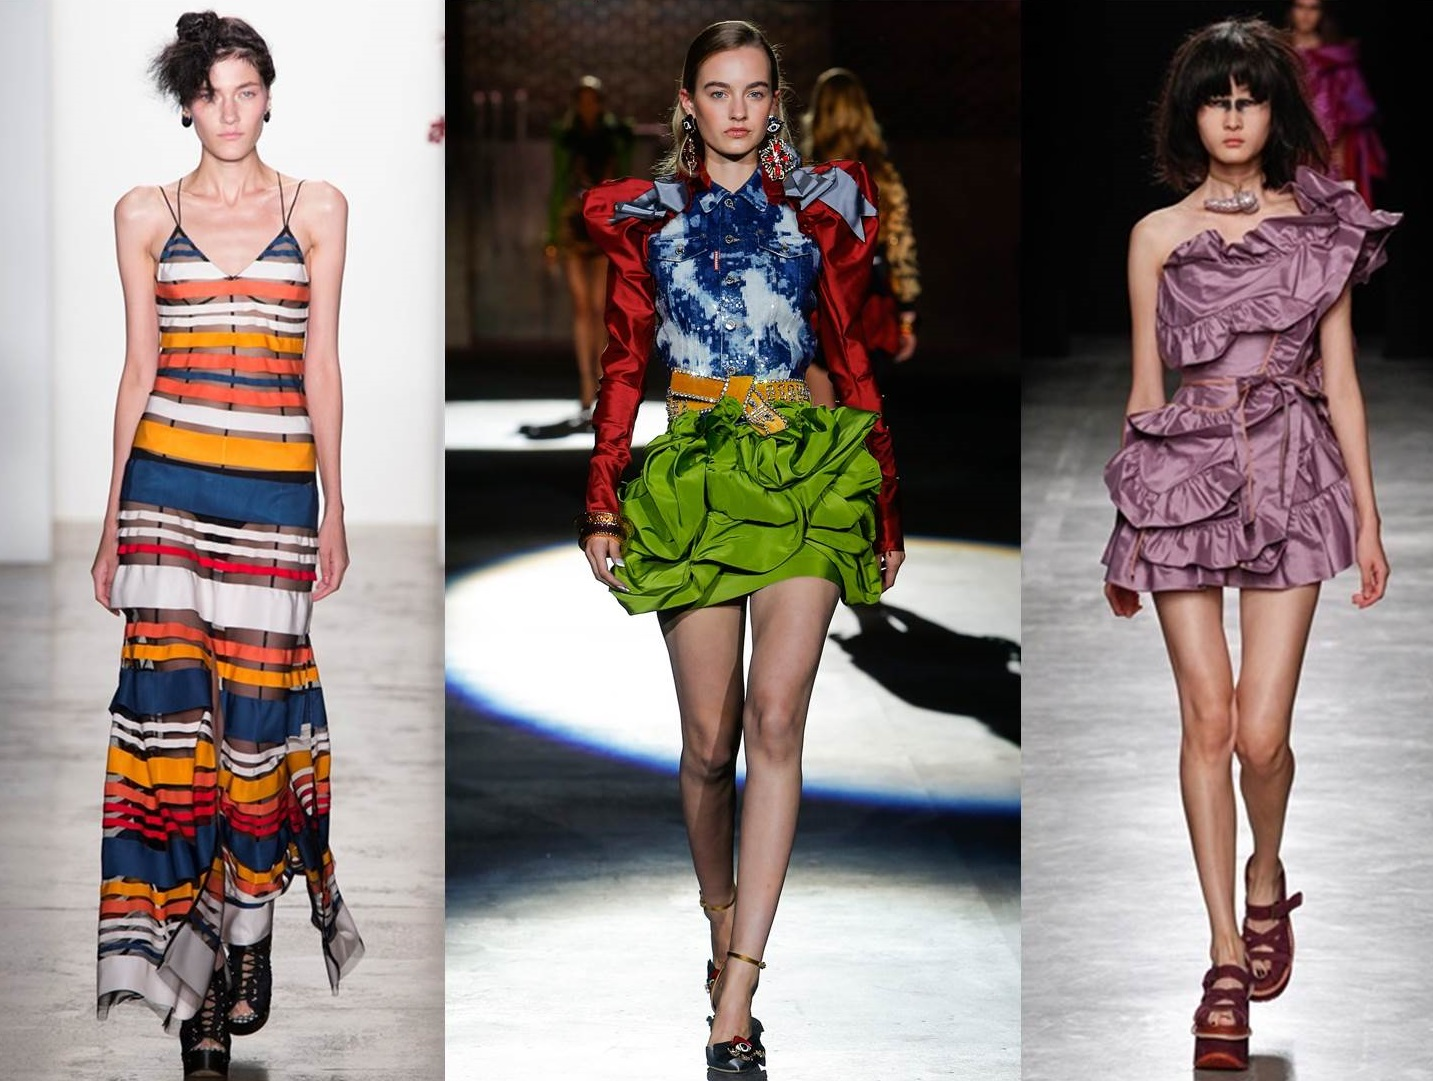 Tendenze moda Primavera/Estate 2017, quale fa per te? [TEST]